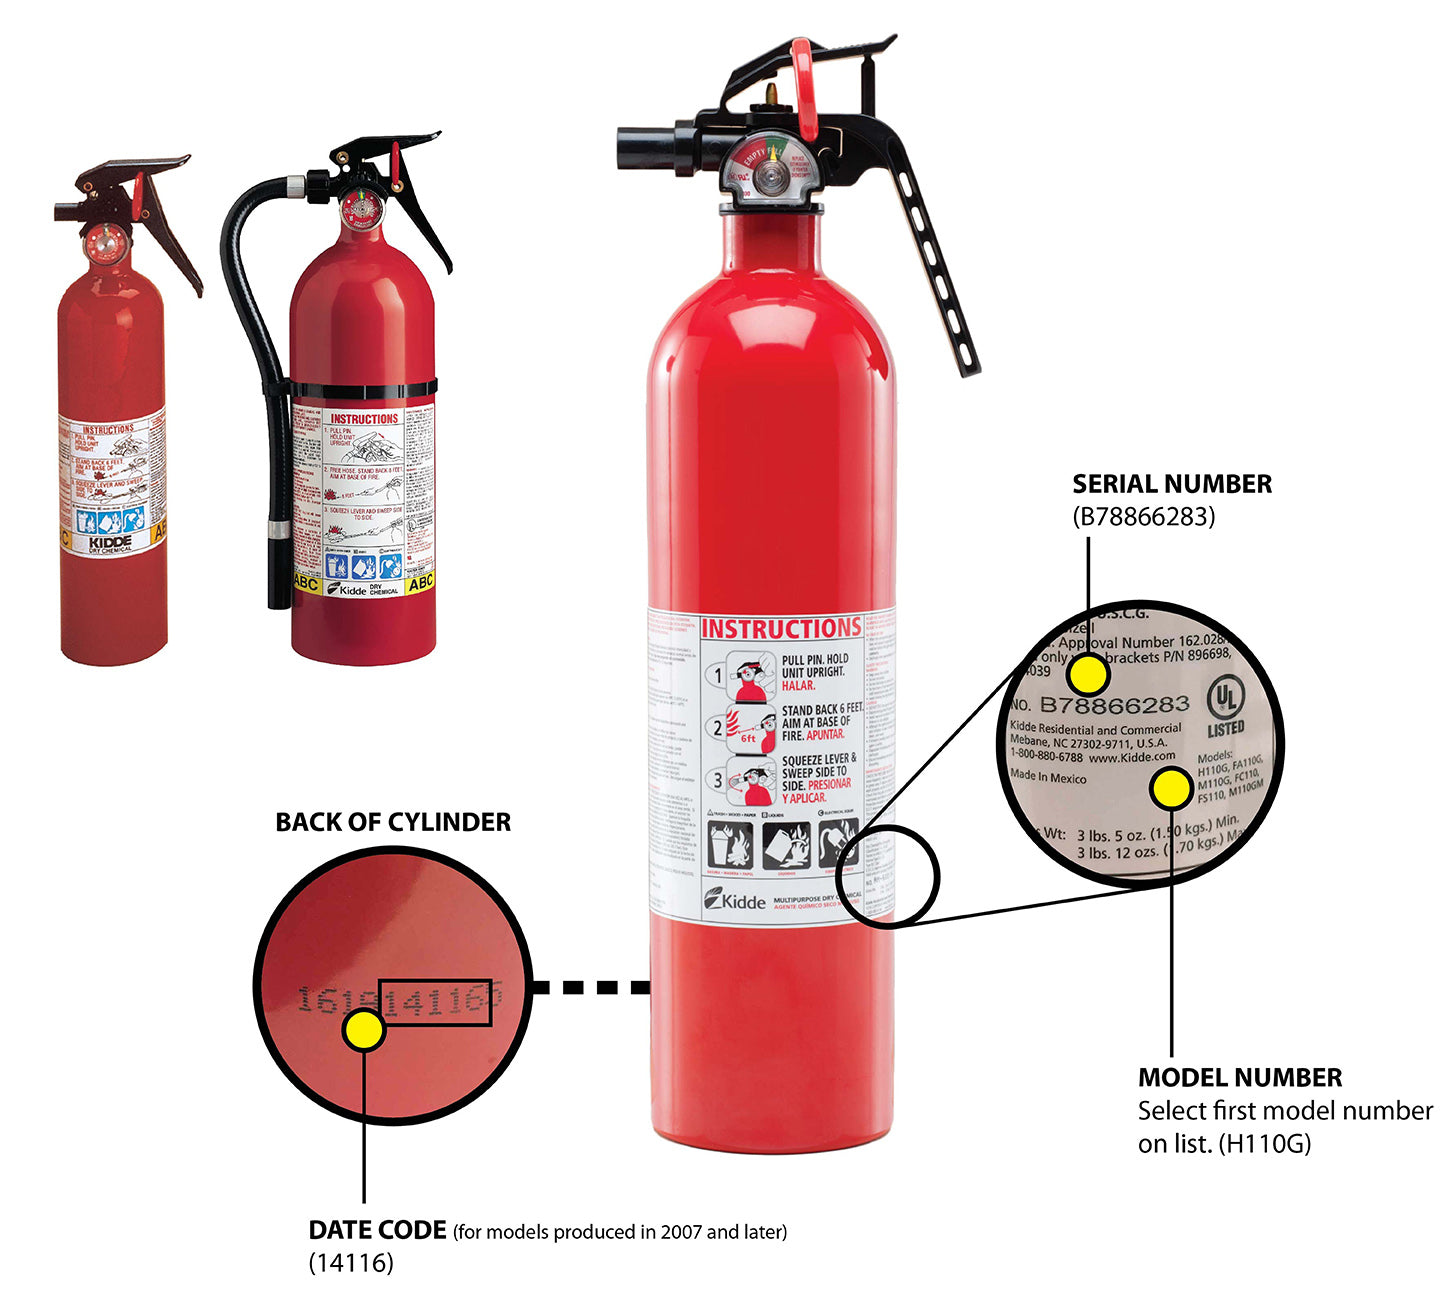 Recall Notice: Kidde Fire Extinguishers